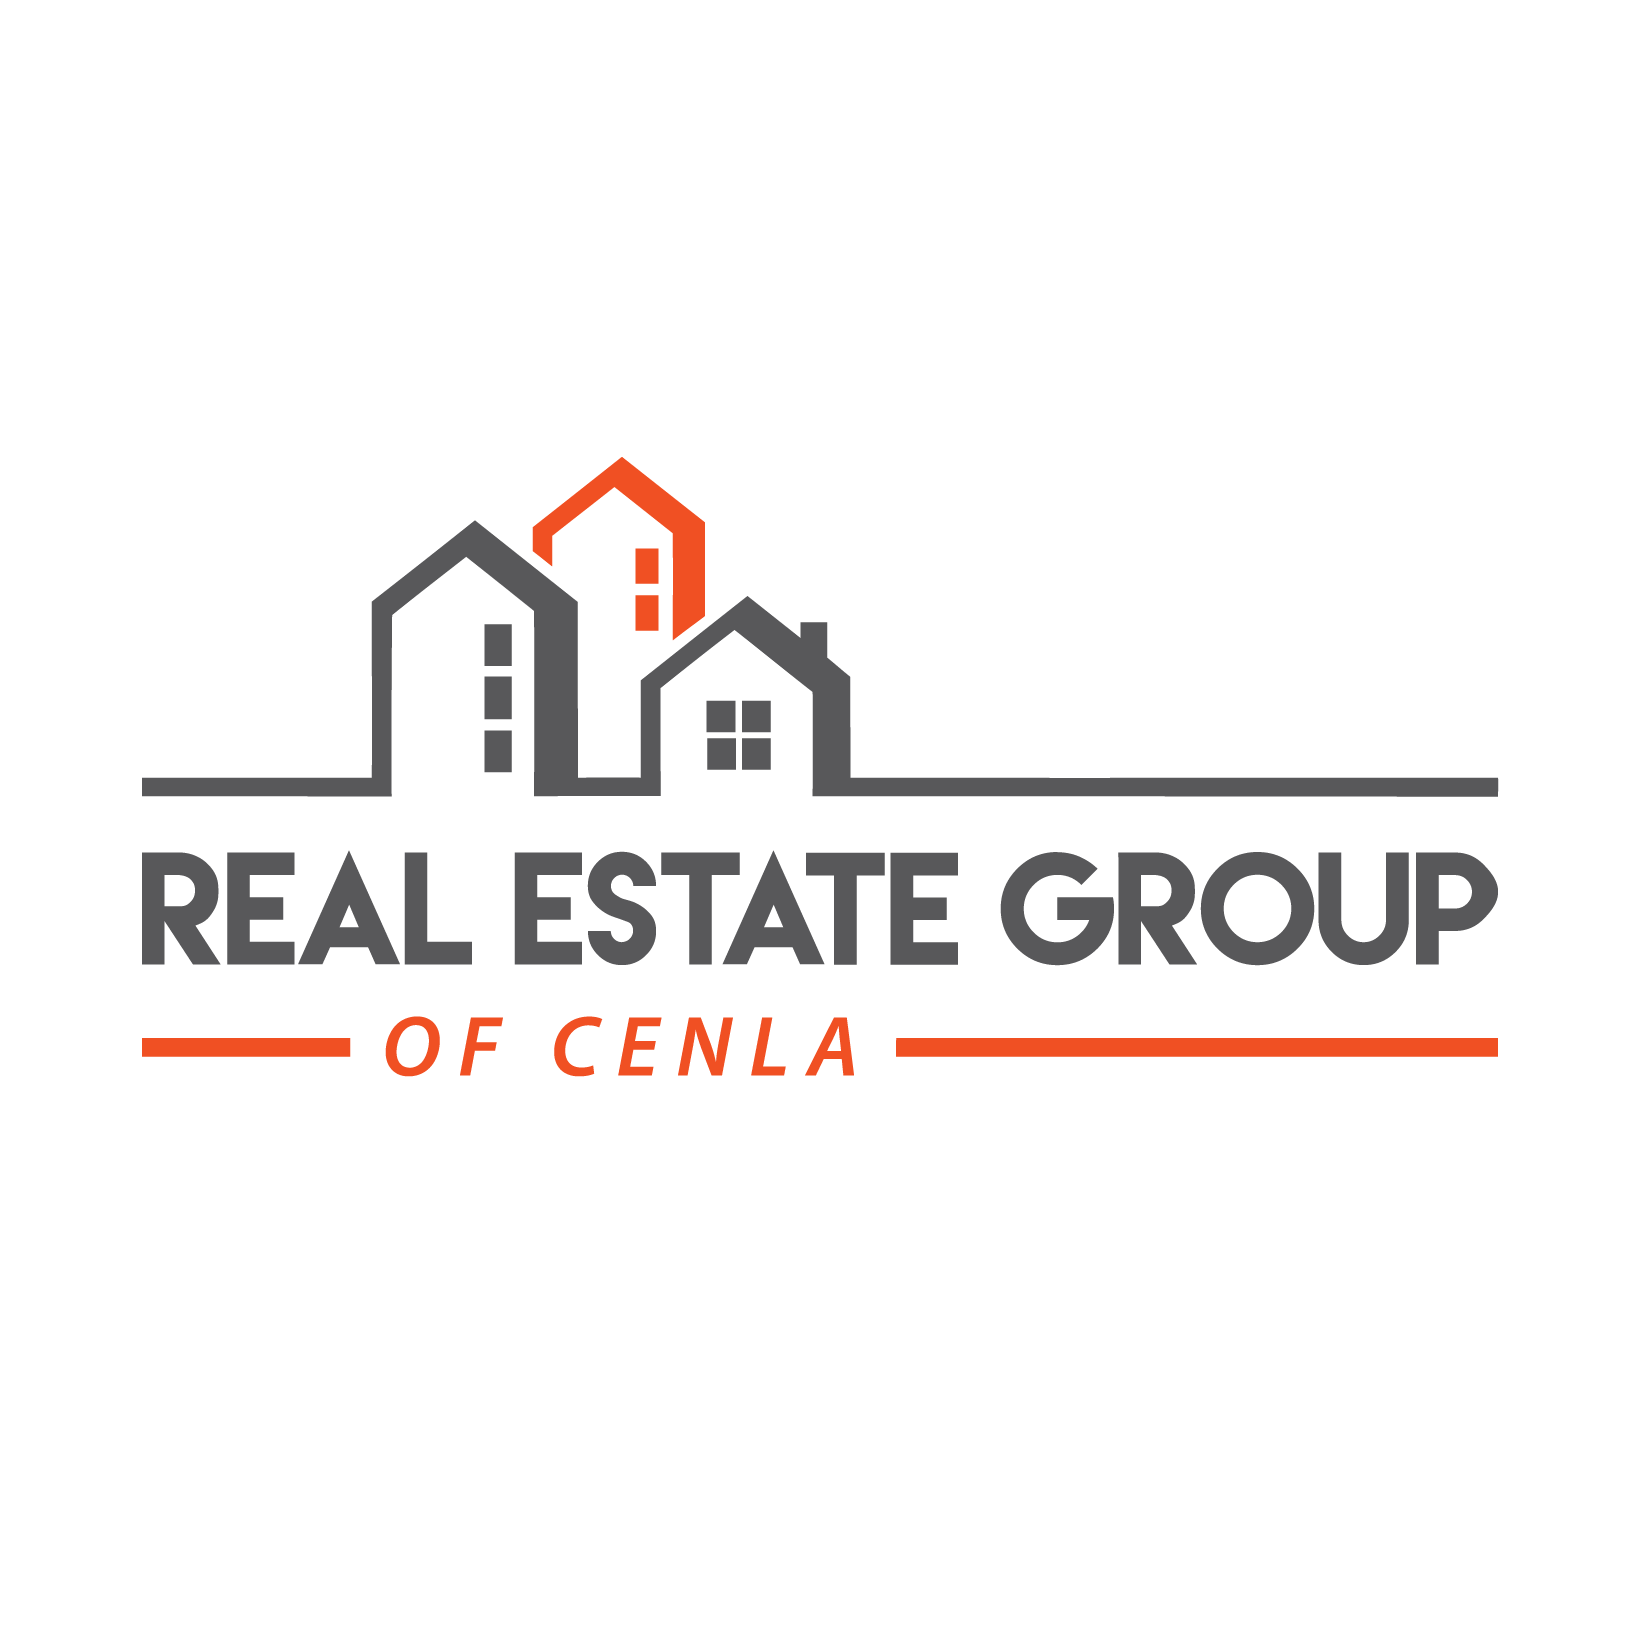 Real Estate Group of CenlaReal Estate Group of Cenla